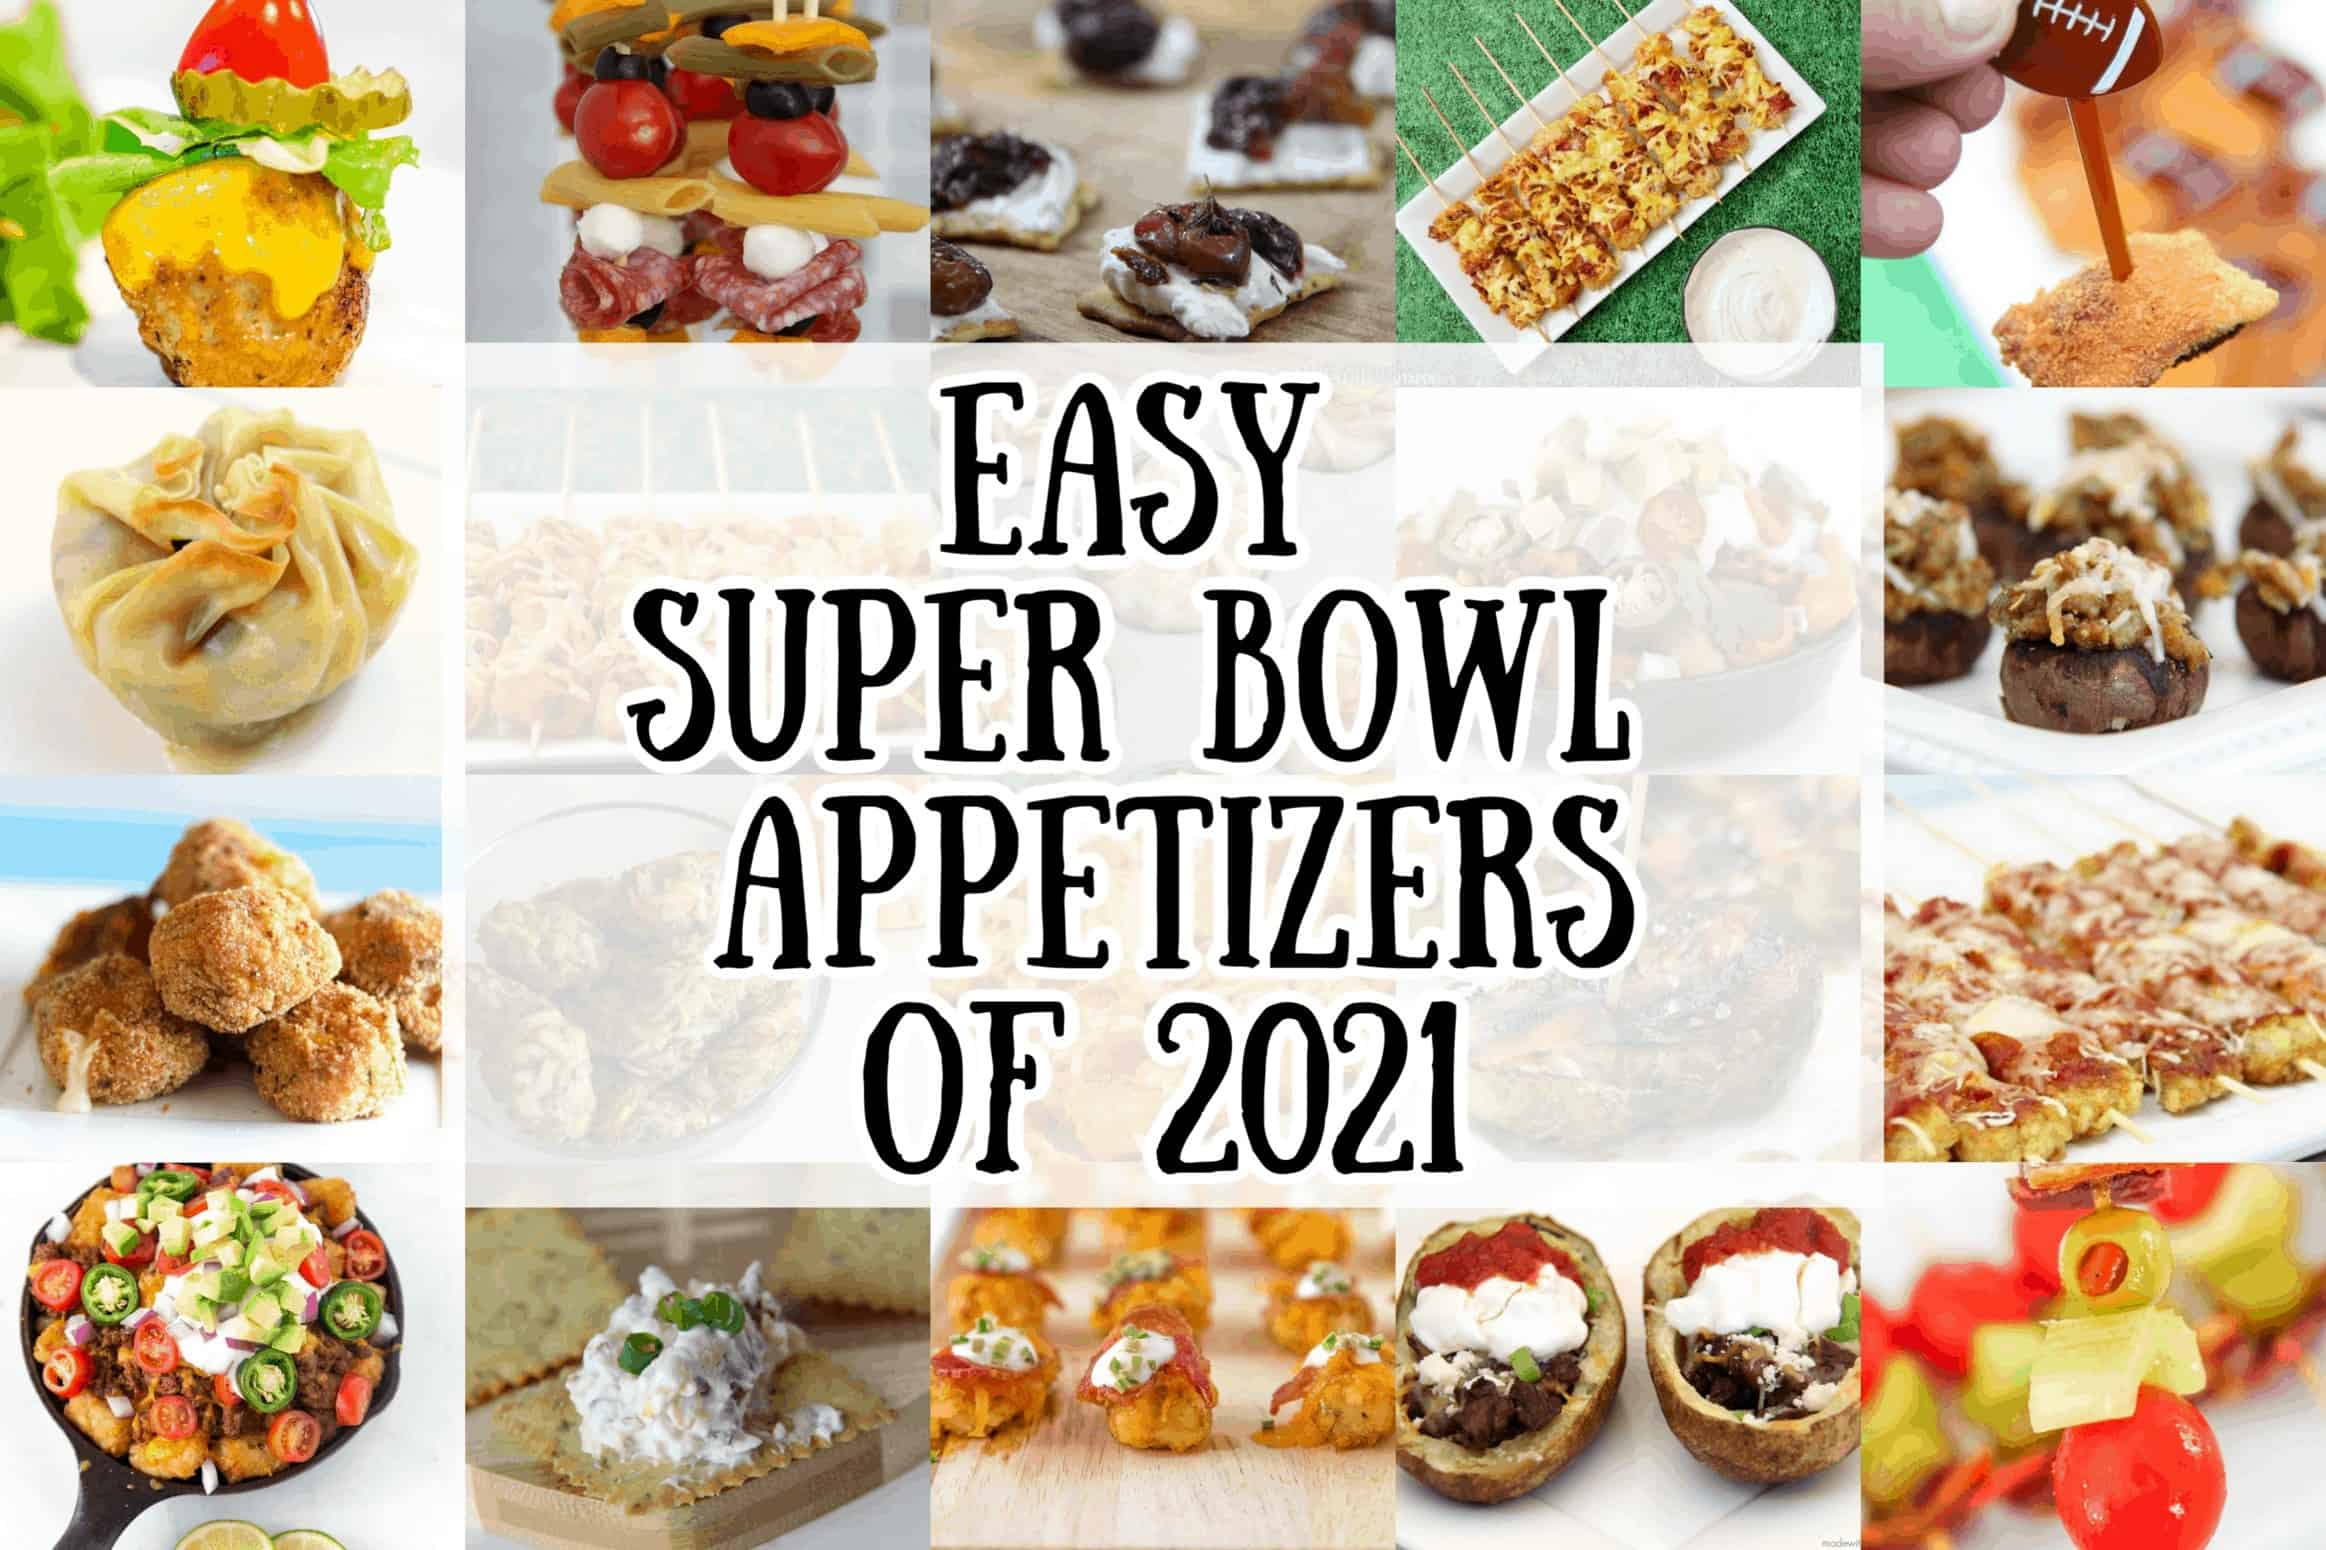 Super Bowl Appetizers of 2021